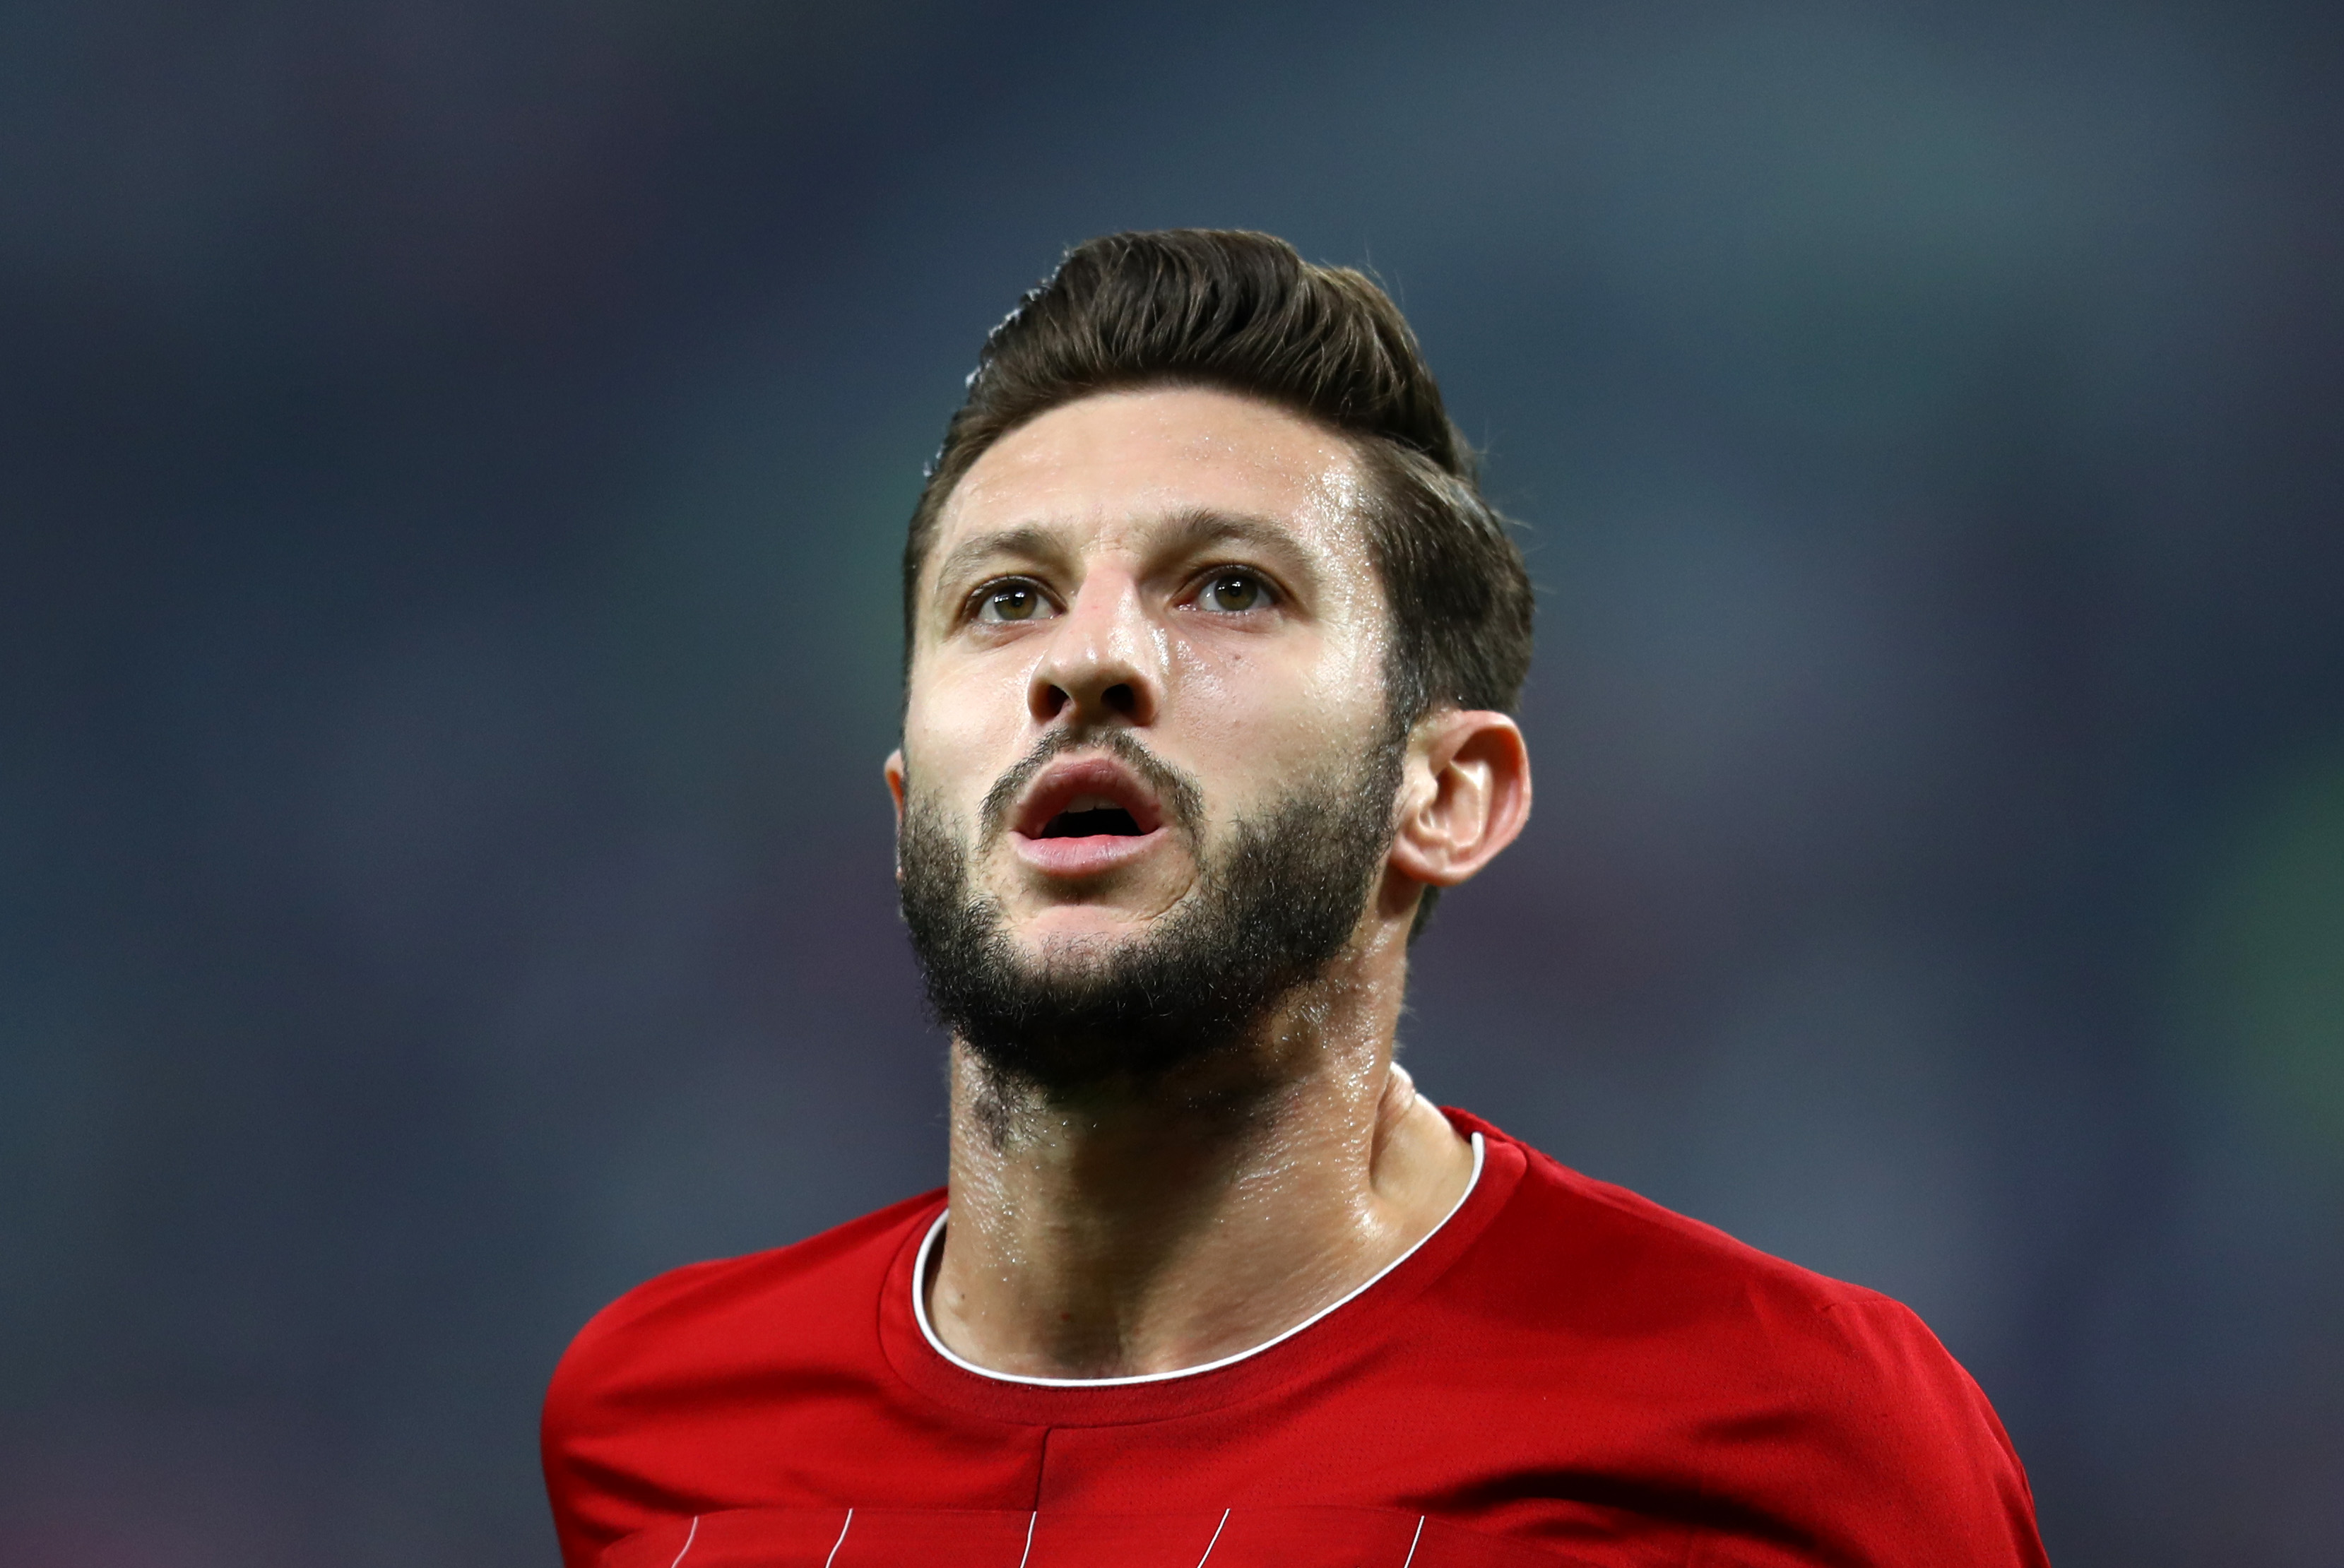 Lallana brings in a load of experience to this Brighton team. (Photo by Francois Nel/Getty Images)